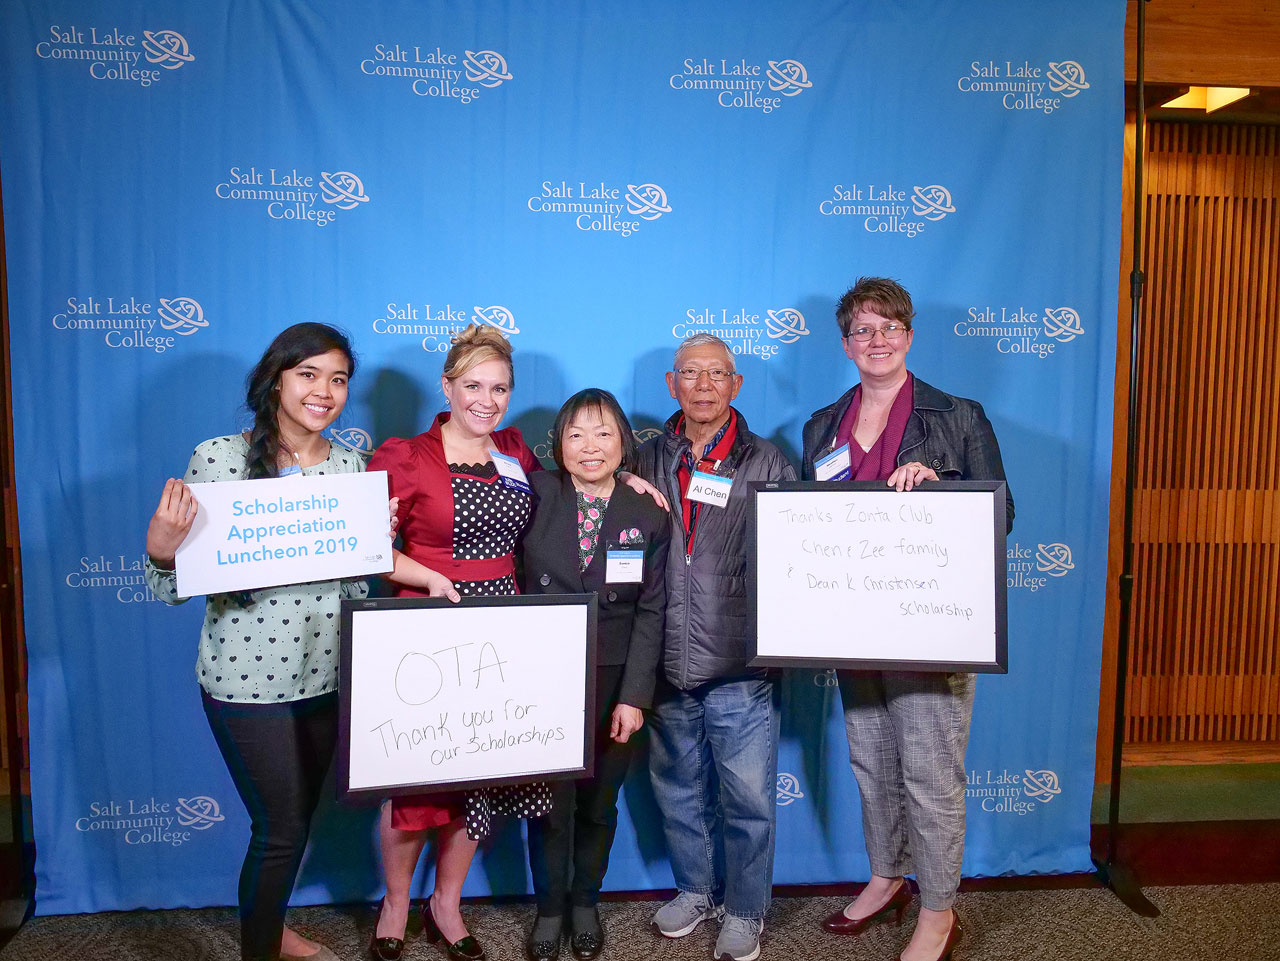 Eunice Chen, center, and Al Chen, second from right, with three scholarship recipients